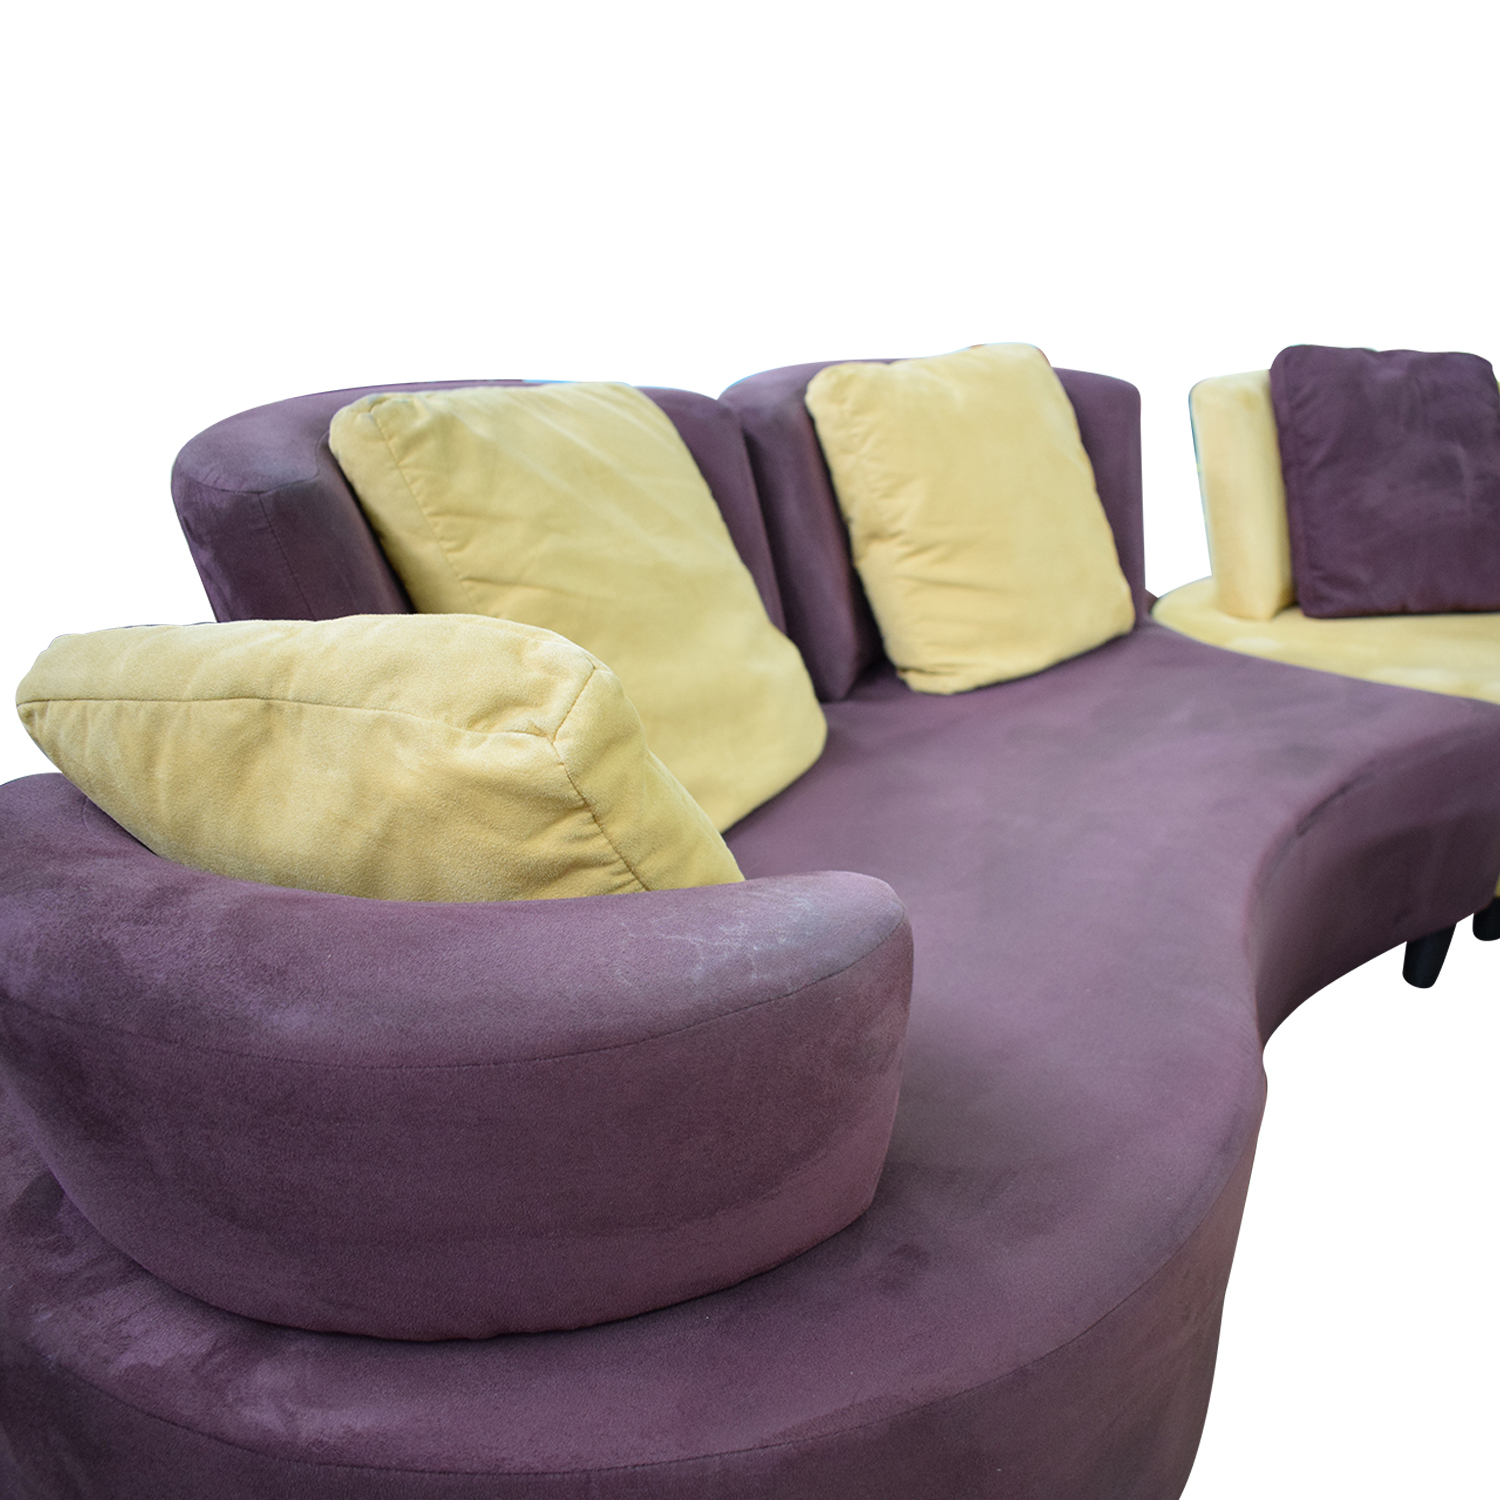 Normand Couture Design Cameleon Sectional Sofa Normand Couture Design